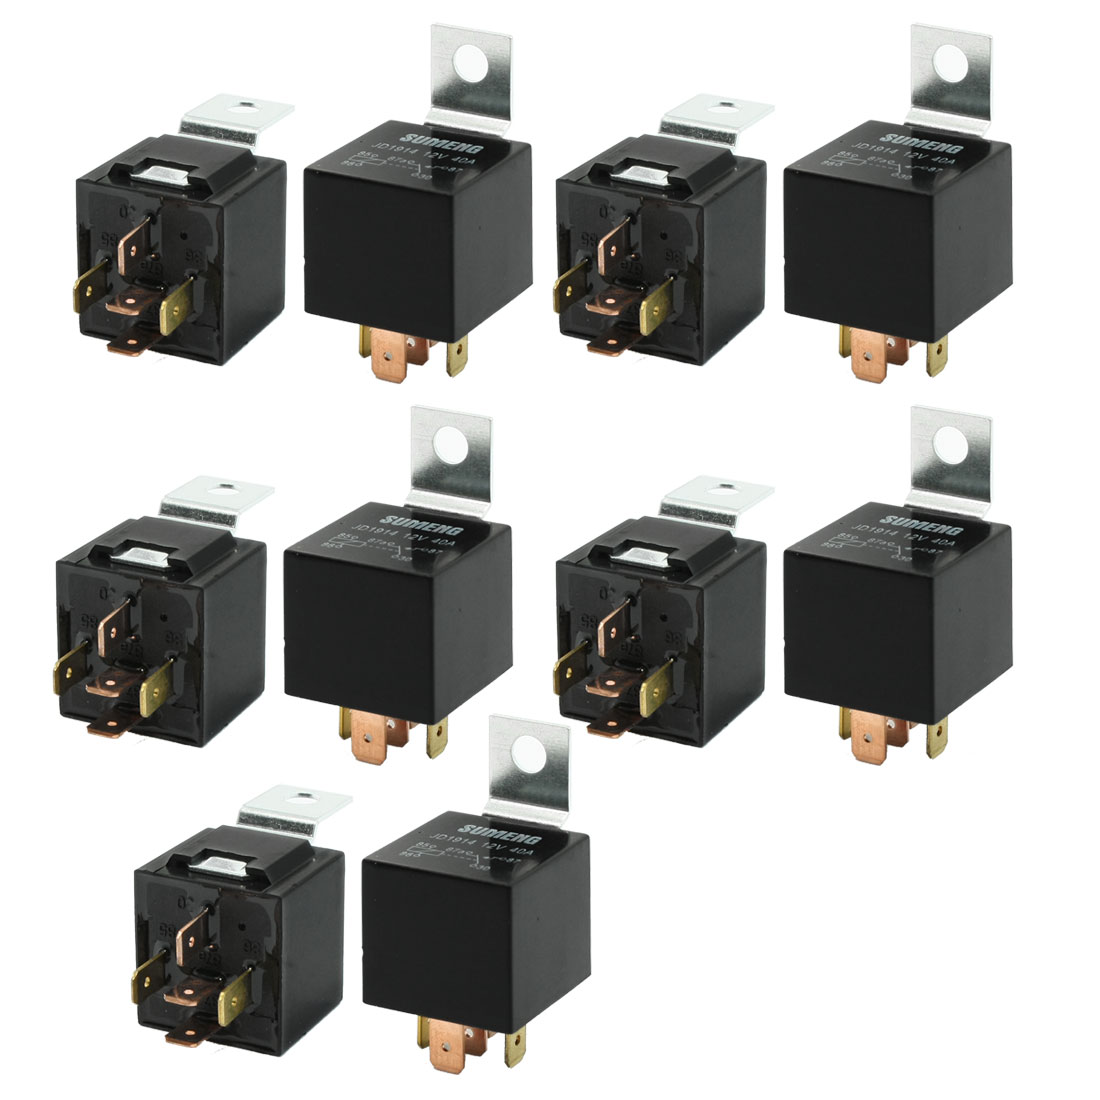 10 Pcs Car Vehicle Security 5 Pin SPDT Power Relay DC 12V 40A